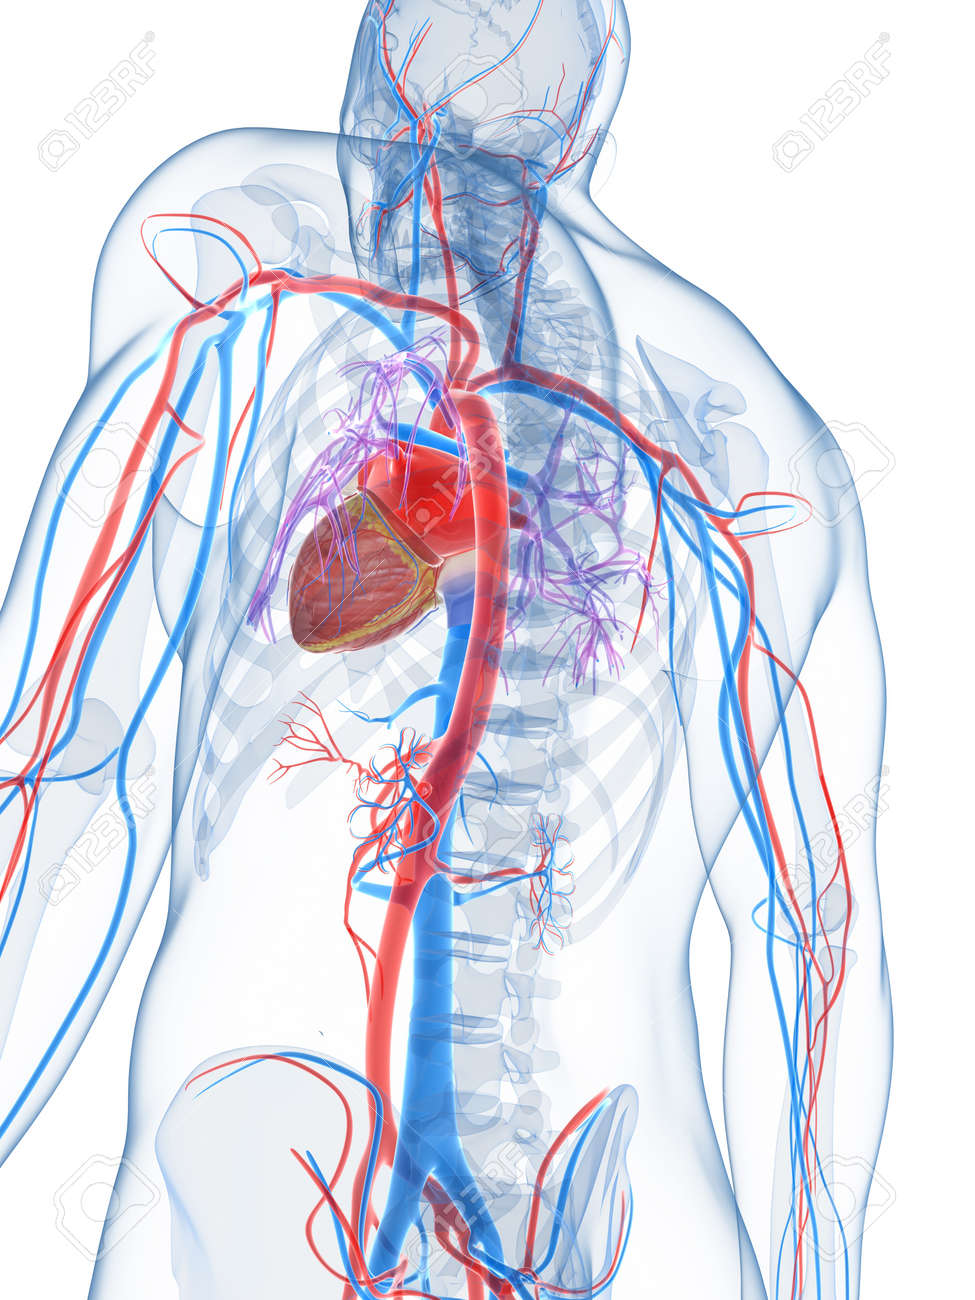 3d Rendered Illustration Of The Human Vascular System Stock Photo